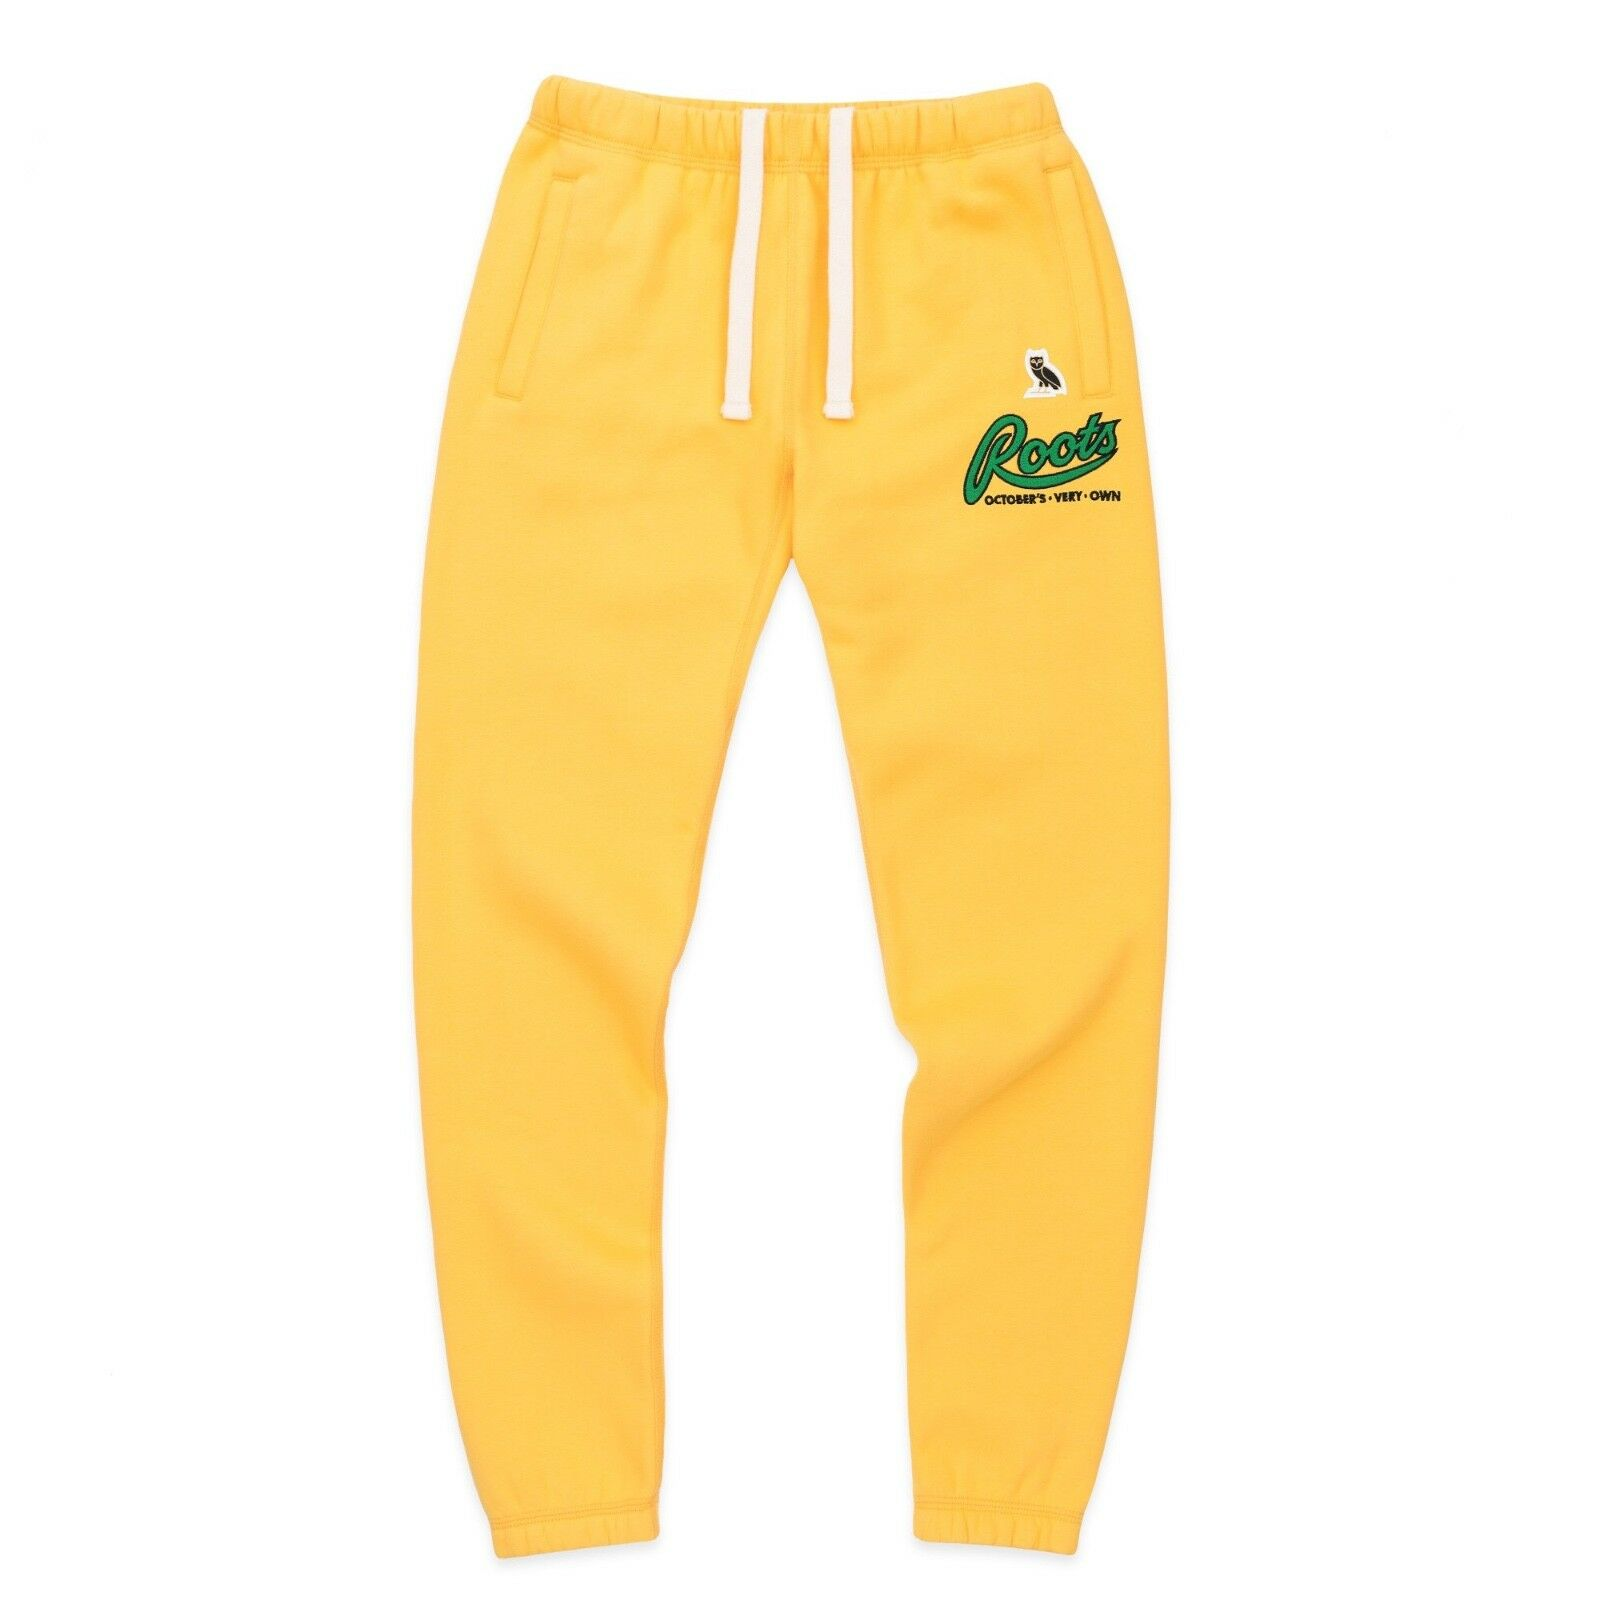 NEW October's Very Own OVO X ROOTS Fall'17 Womens Sweatpants Mustard LARGE Drake